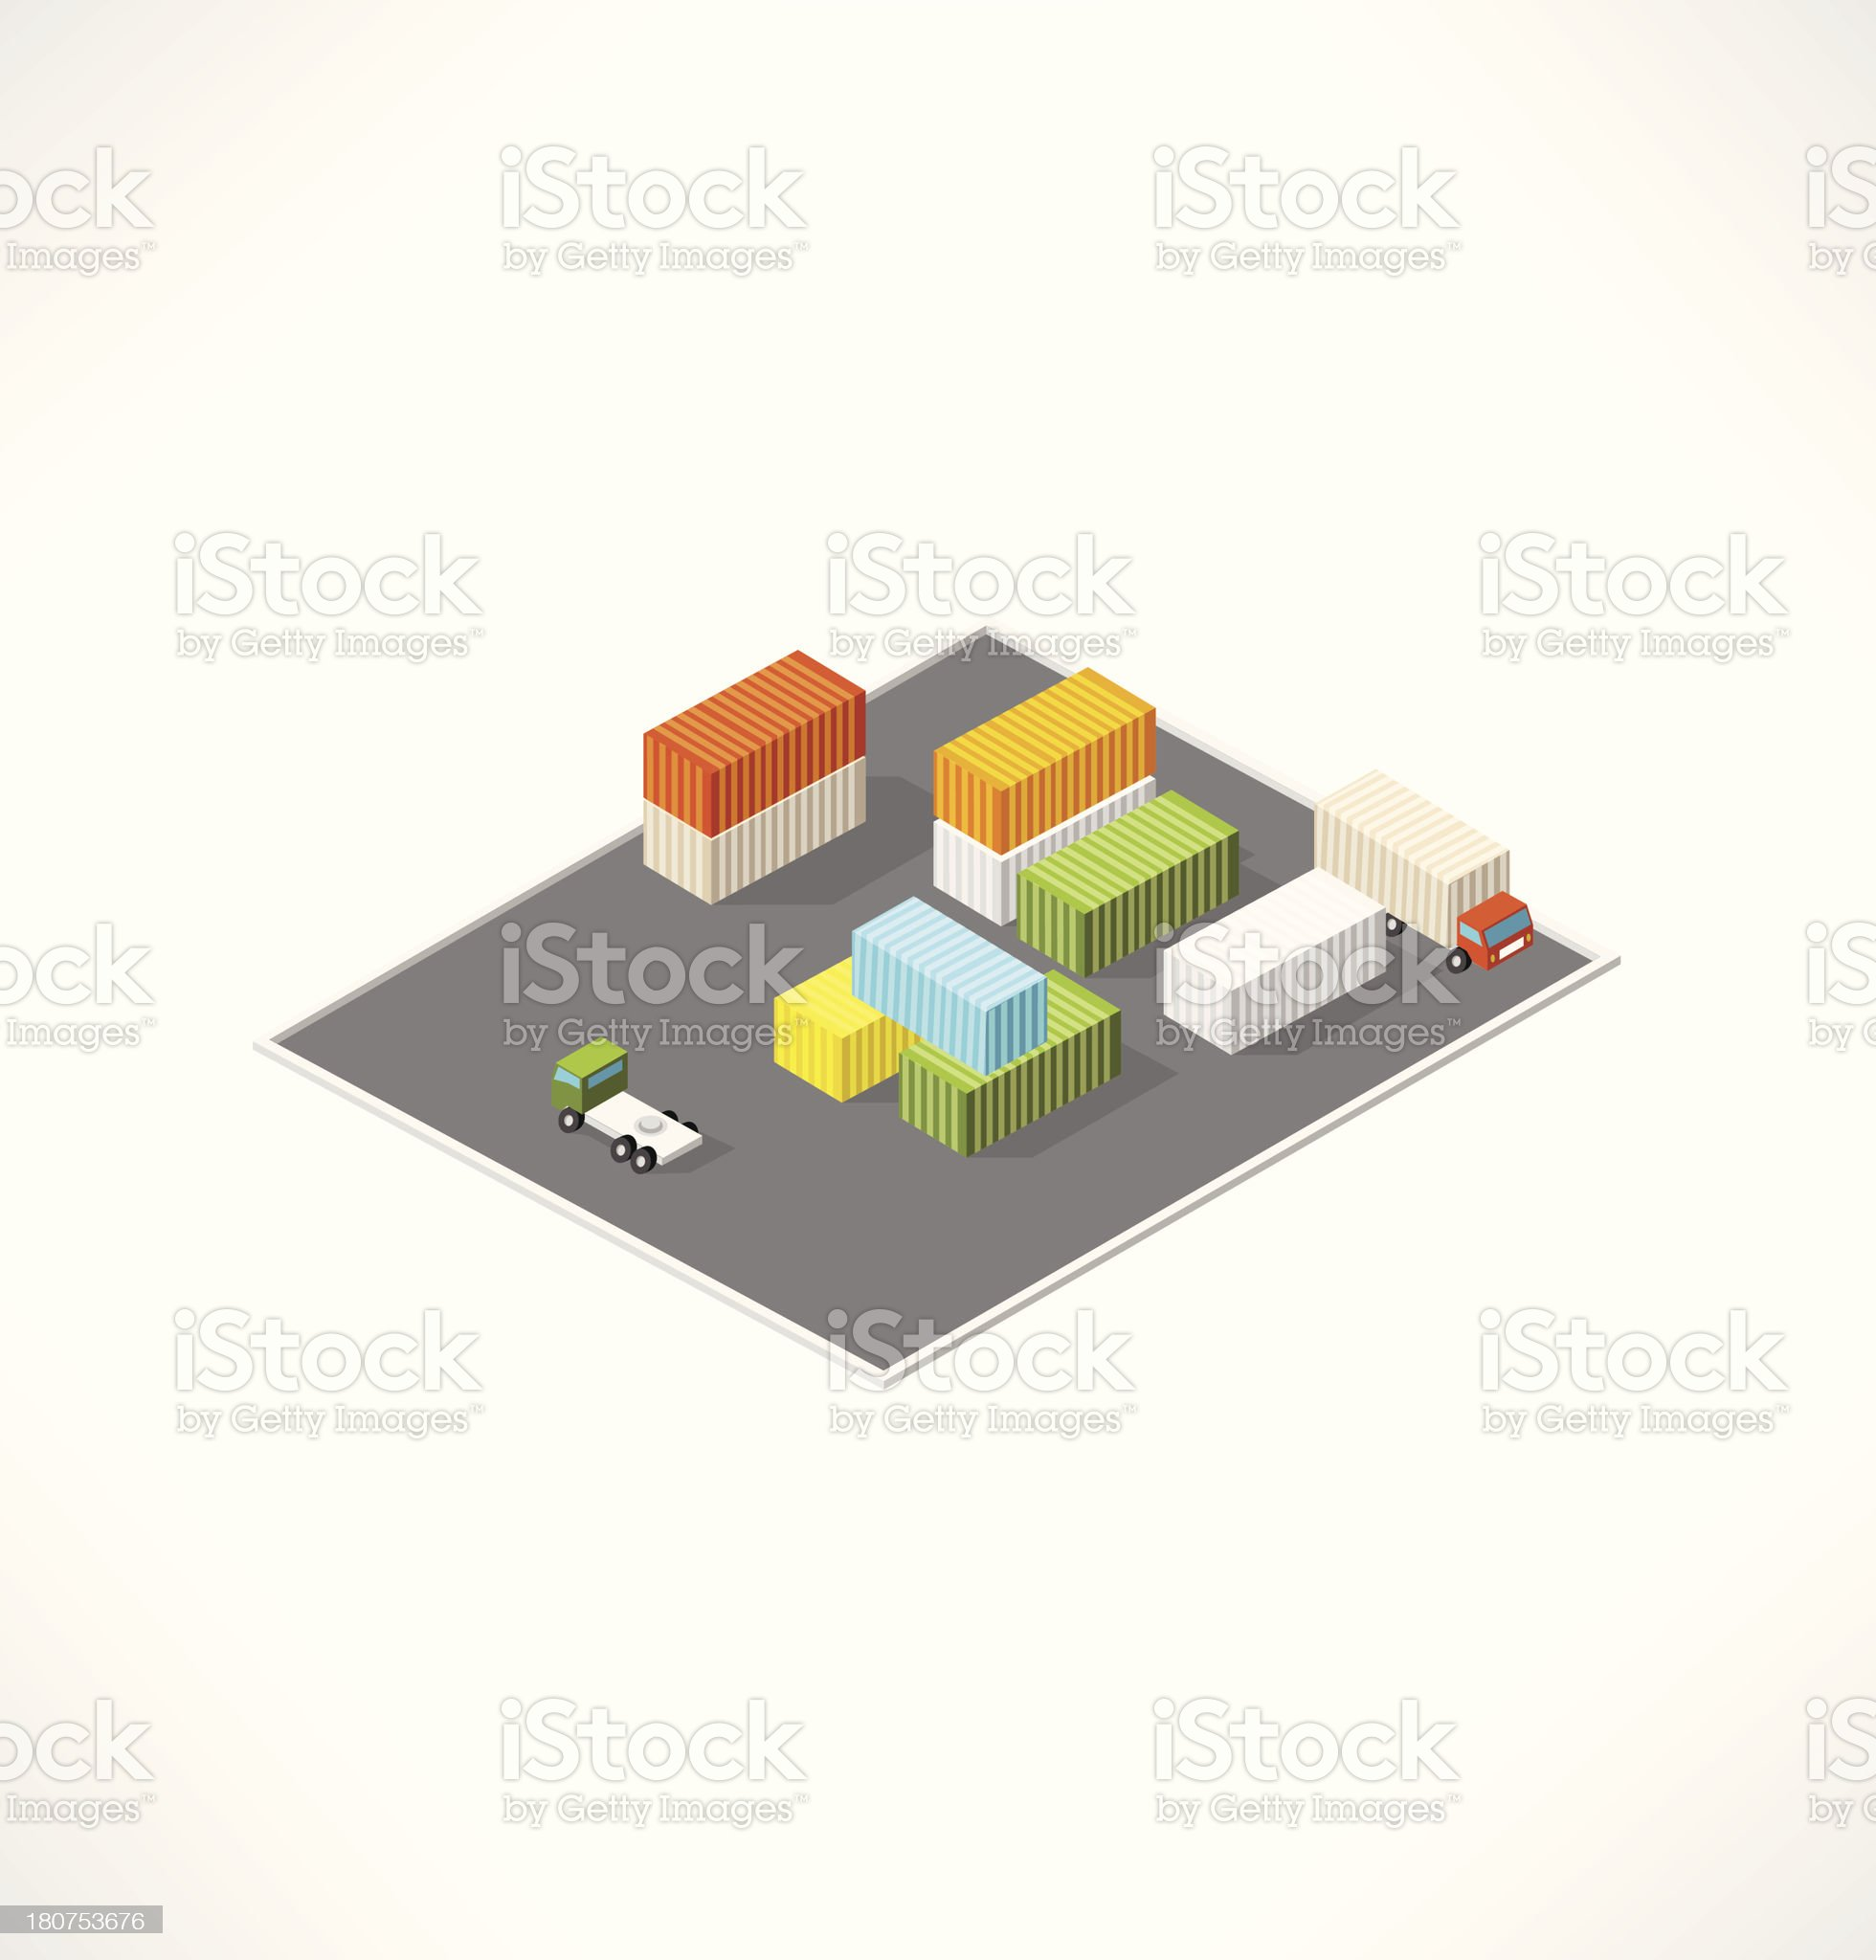 Cargo area with containers. Isometric building. royalty-free stock vector art